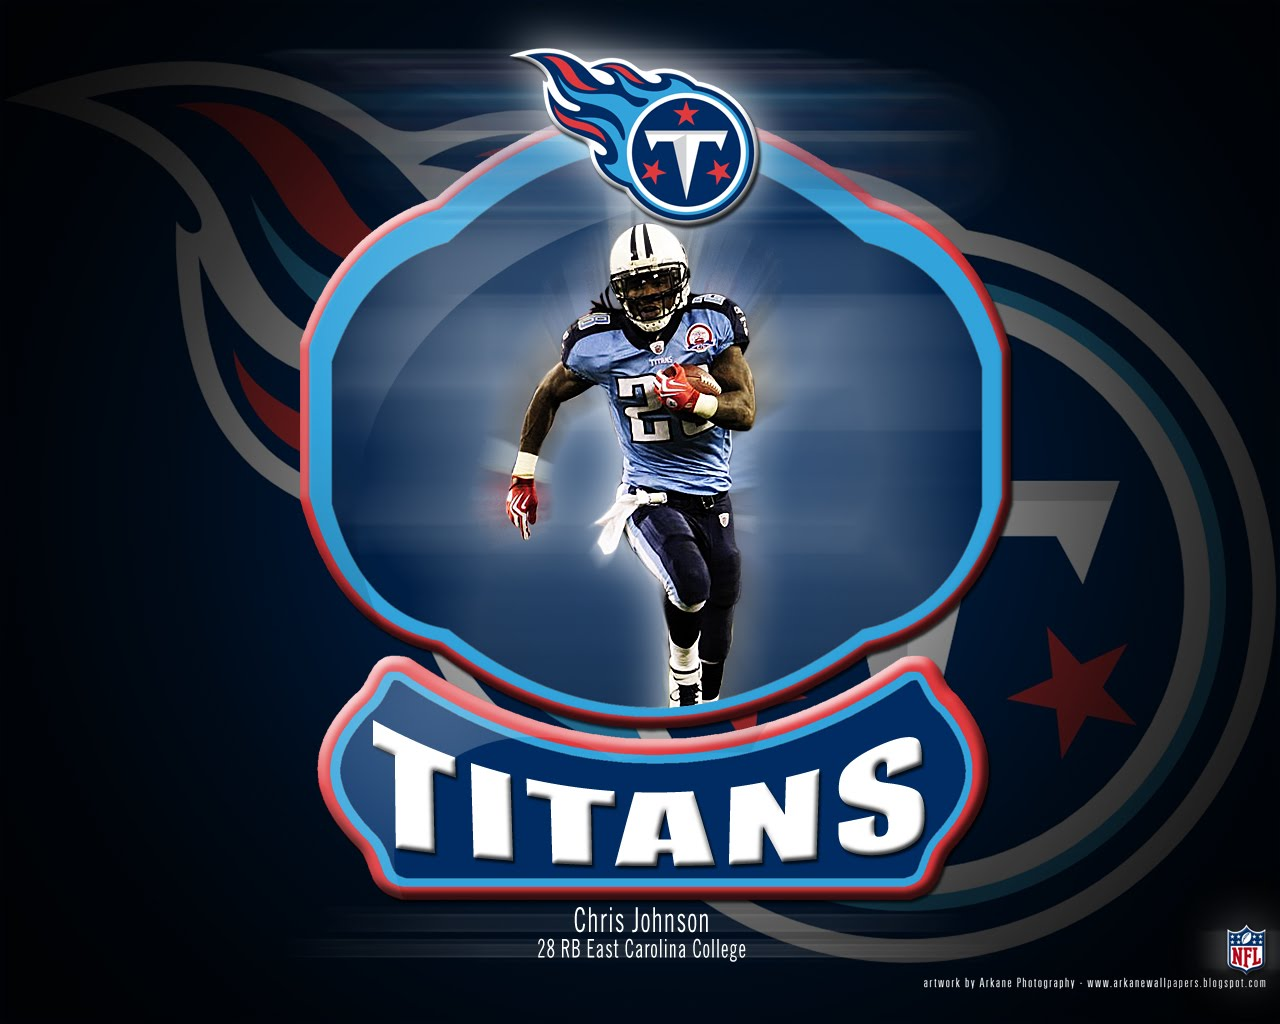 Arkane Nfl Wallpapers Chris Johnson Tennessee Titans